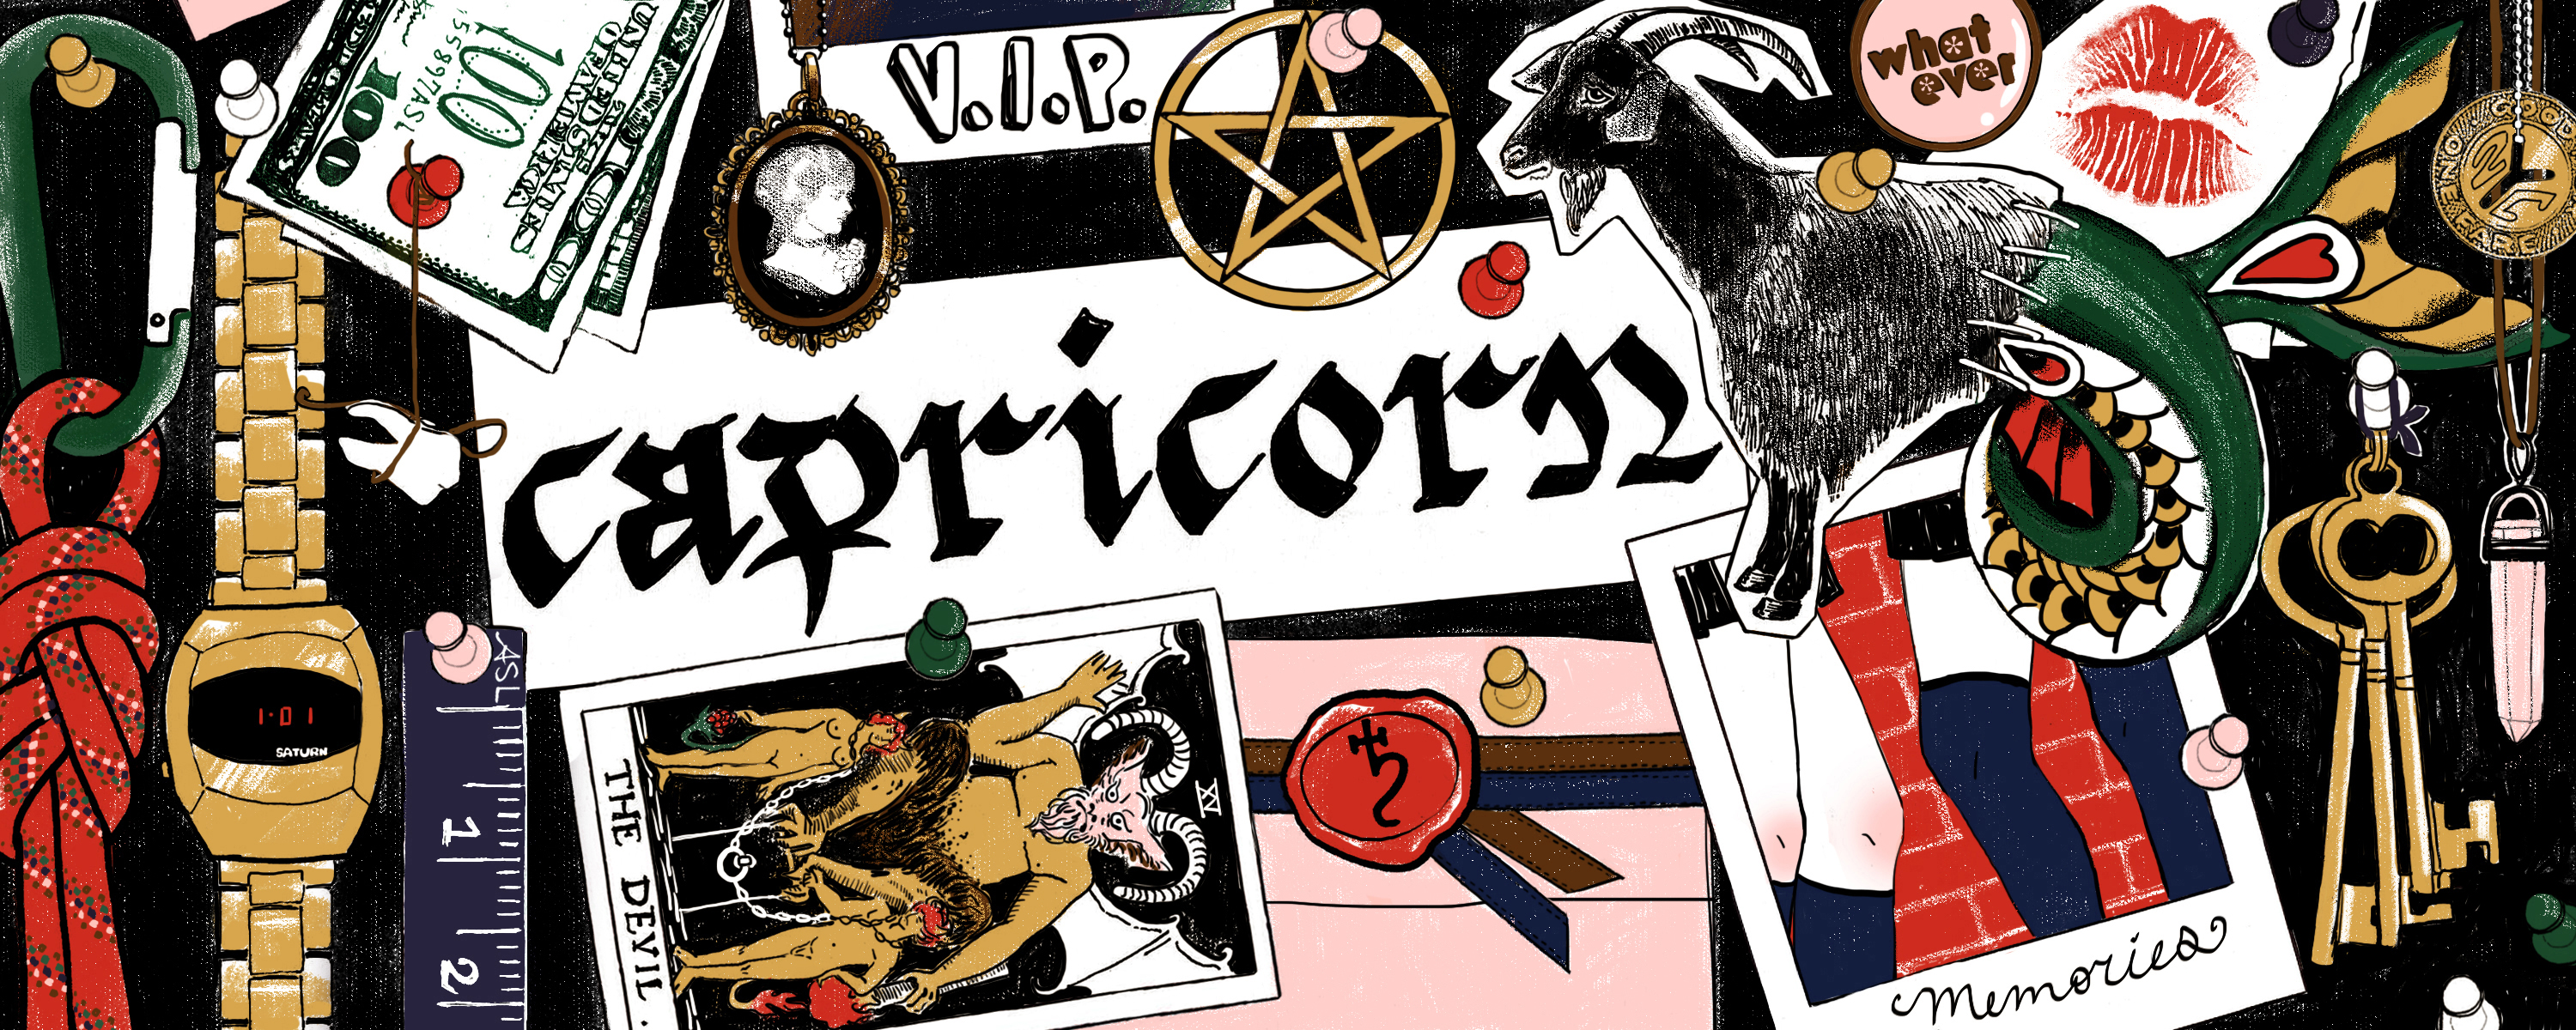 Monthly Horoscope: Capricorn, May 2019 - VICE